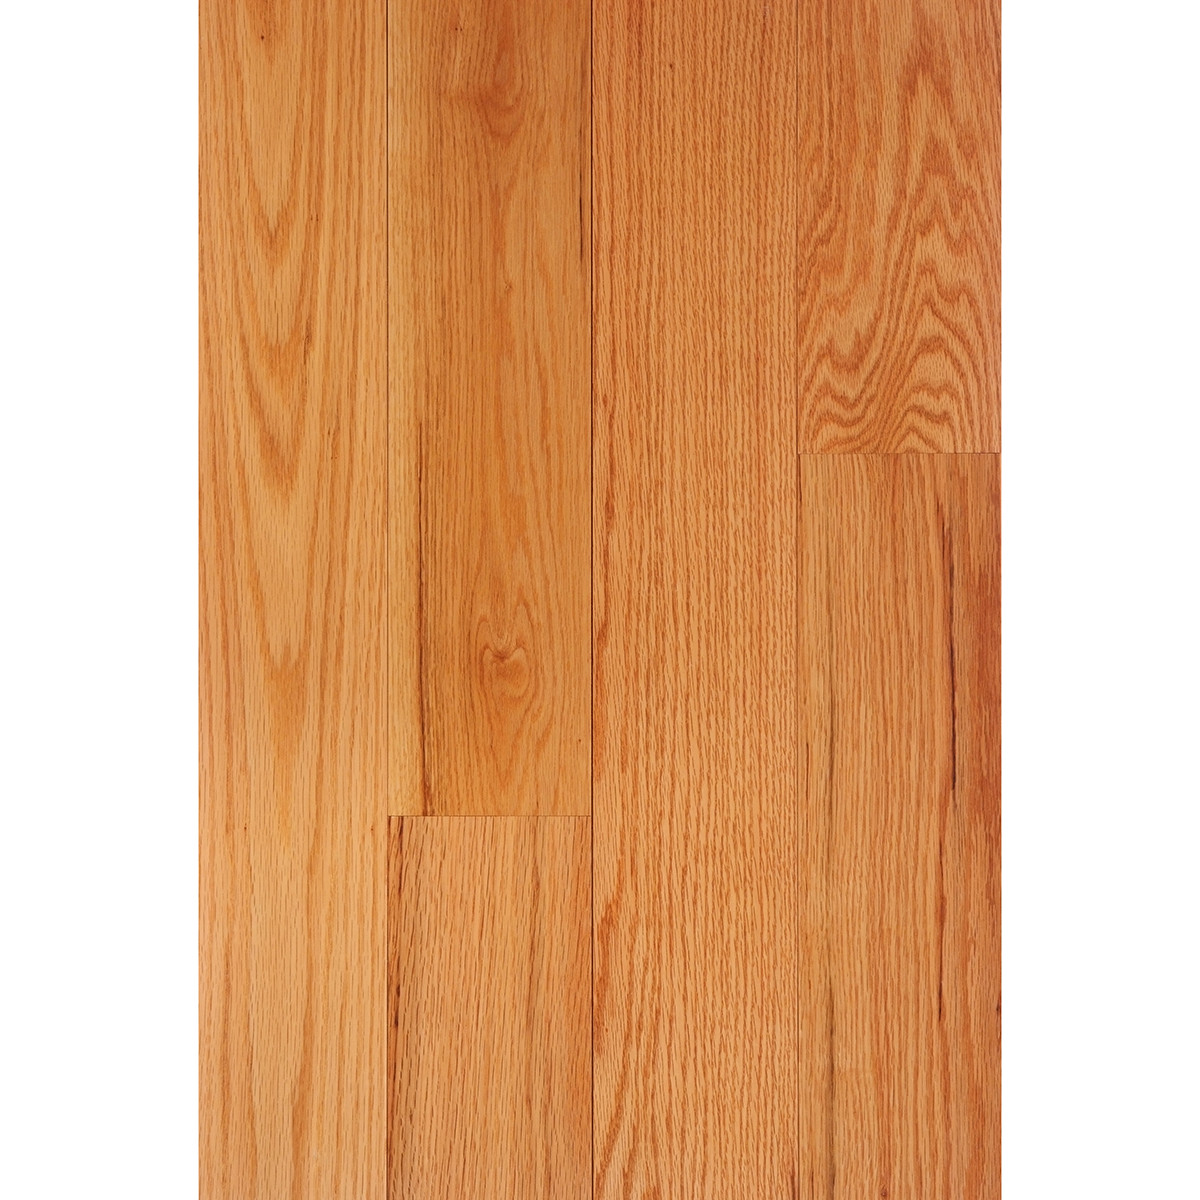 Red Oak Hardwood Flooring Reviews Of Red Oak 3 4 X 5 Select Grade Flooring within Other Items In This Category